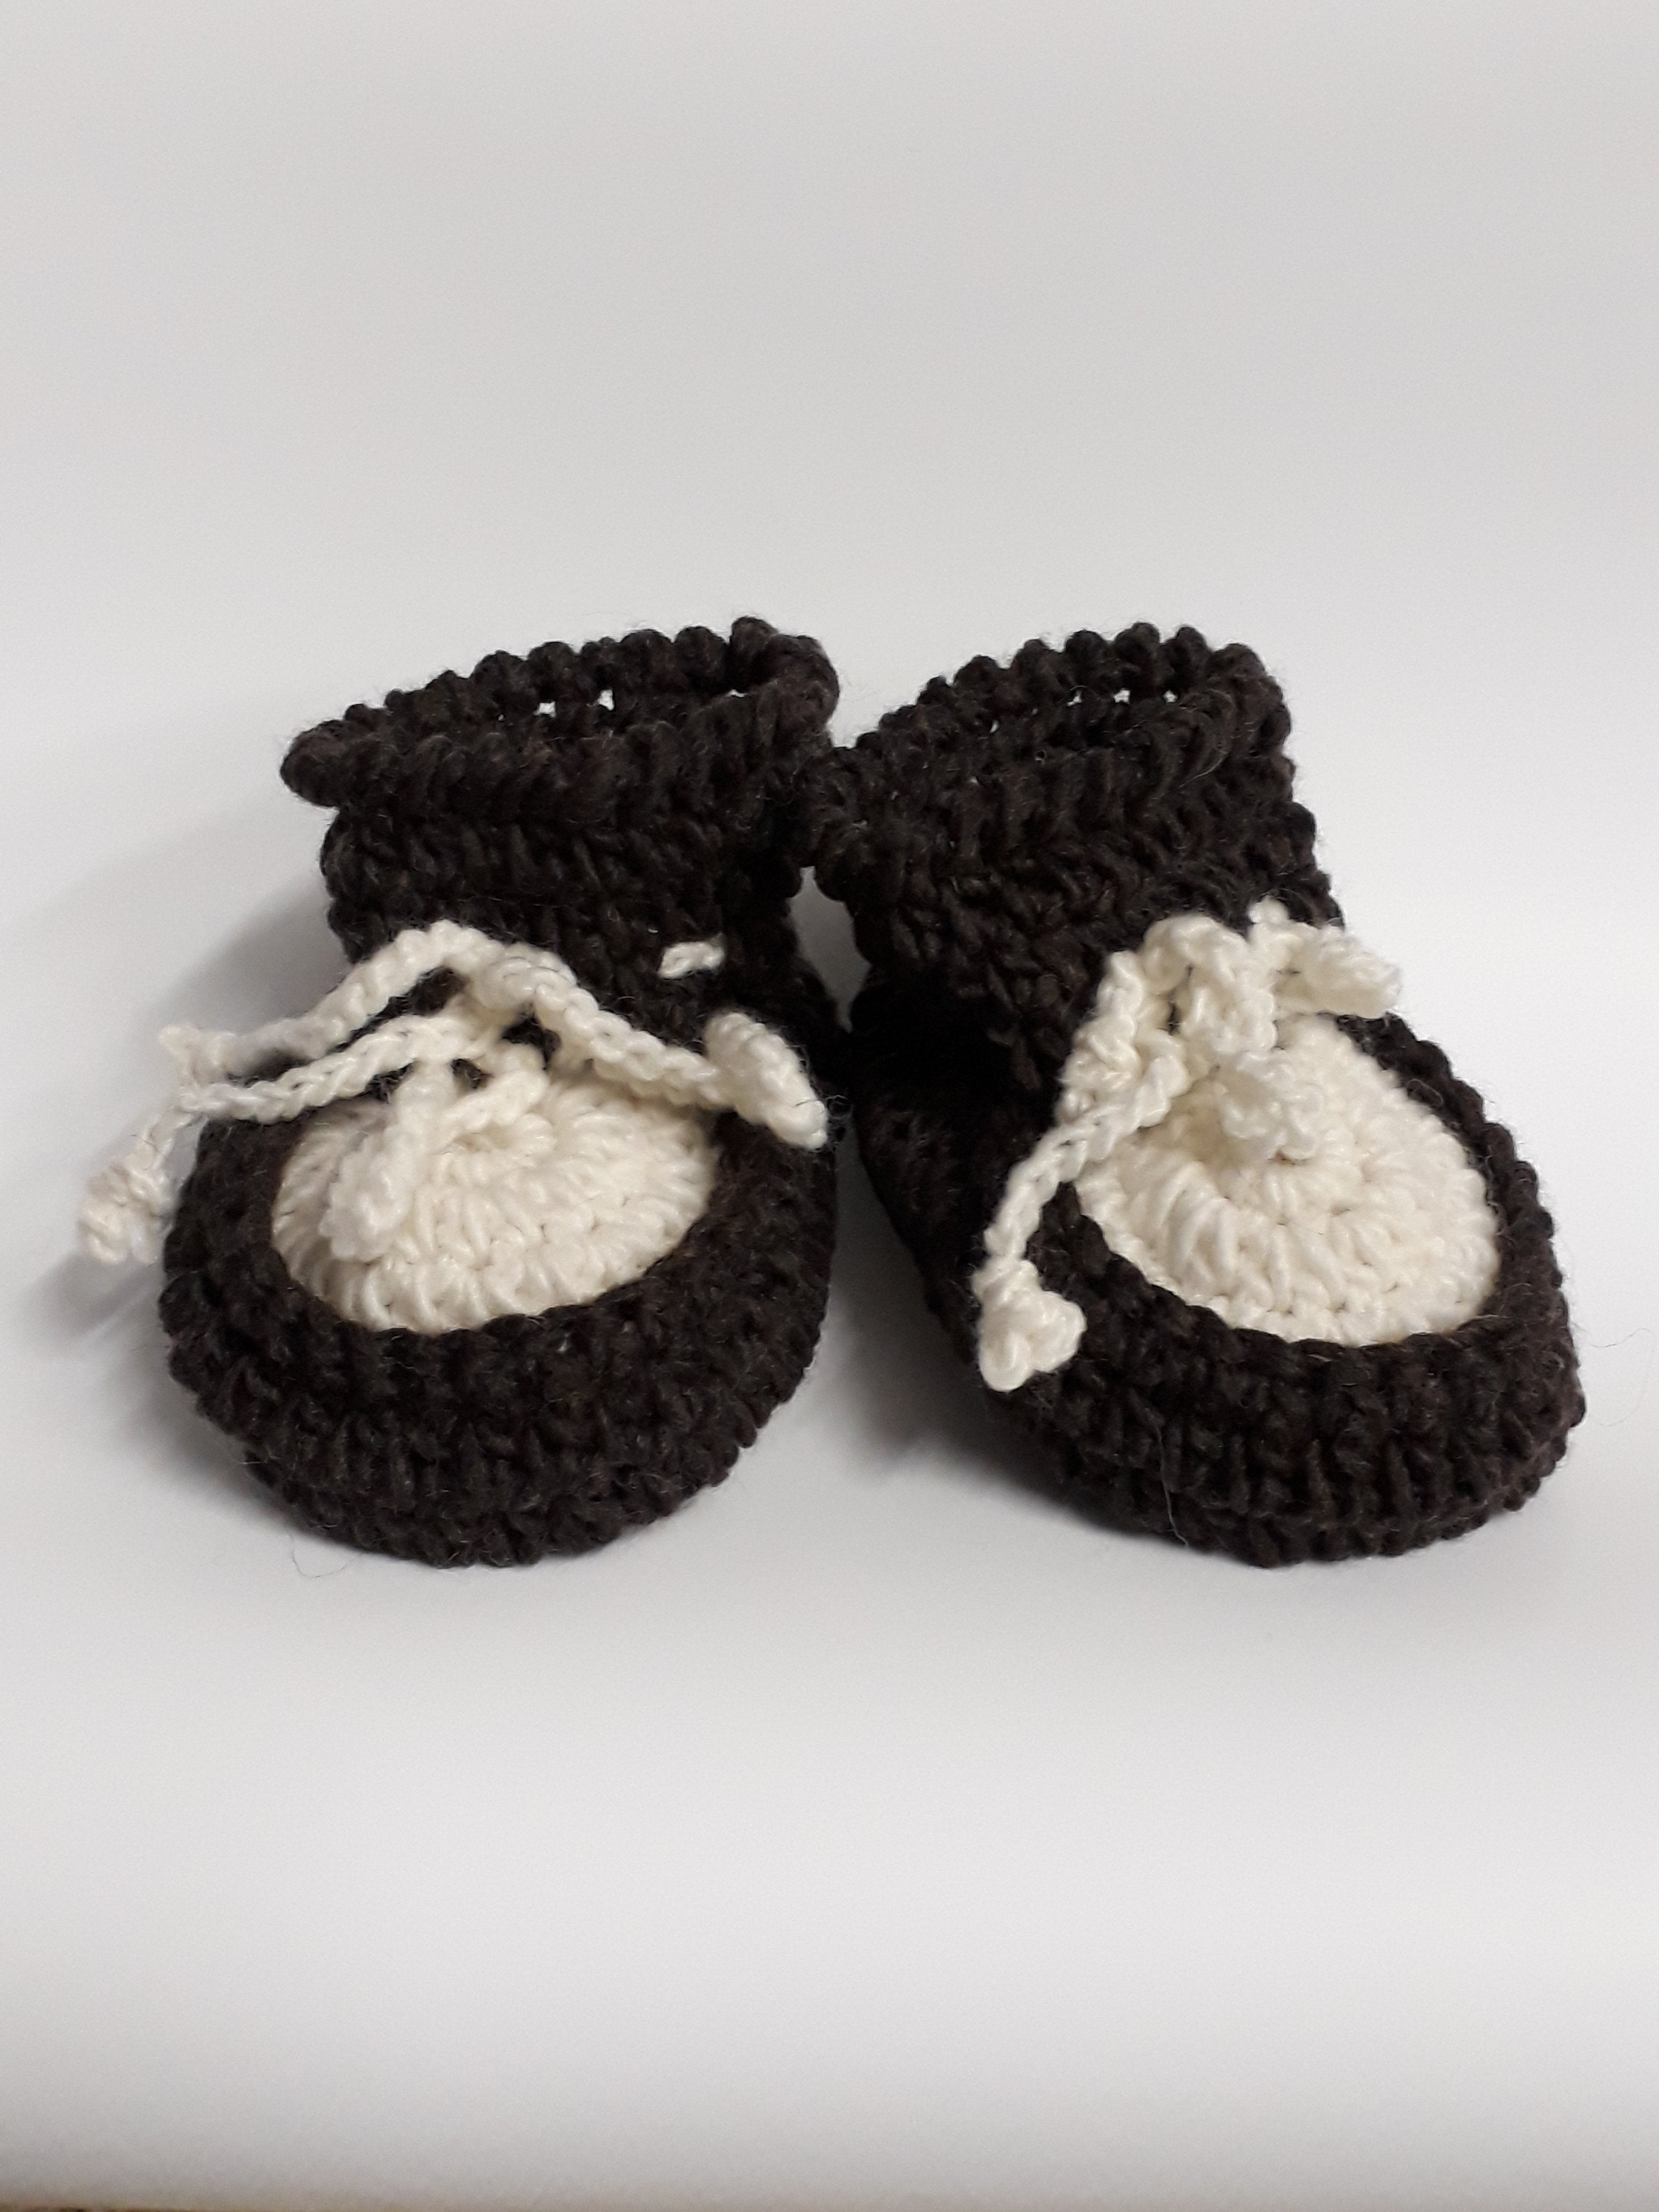 SHEEPSKIN BABY BOOTIES - Woolshed Gallery